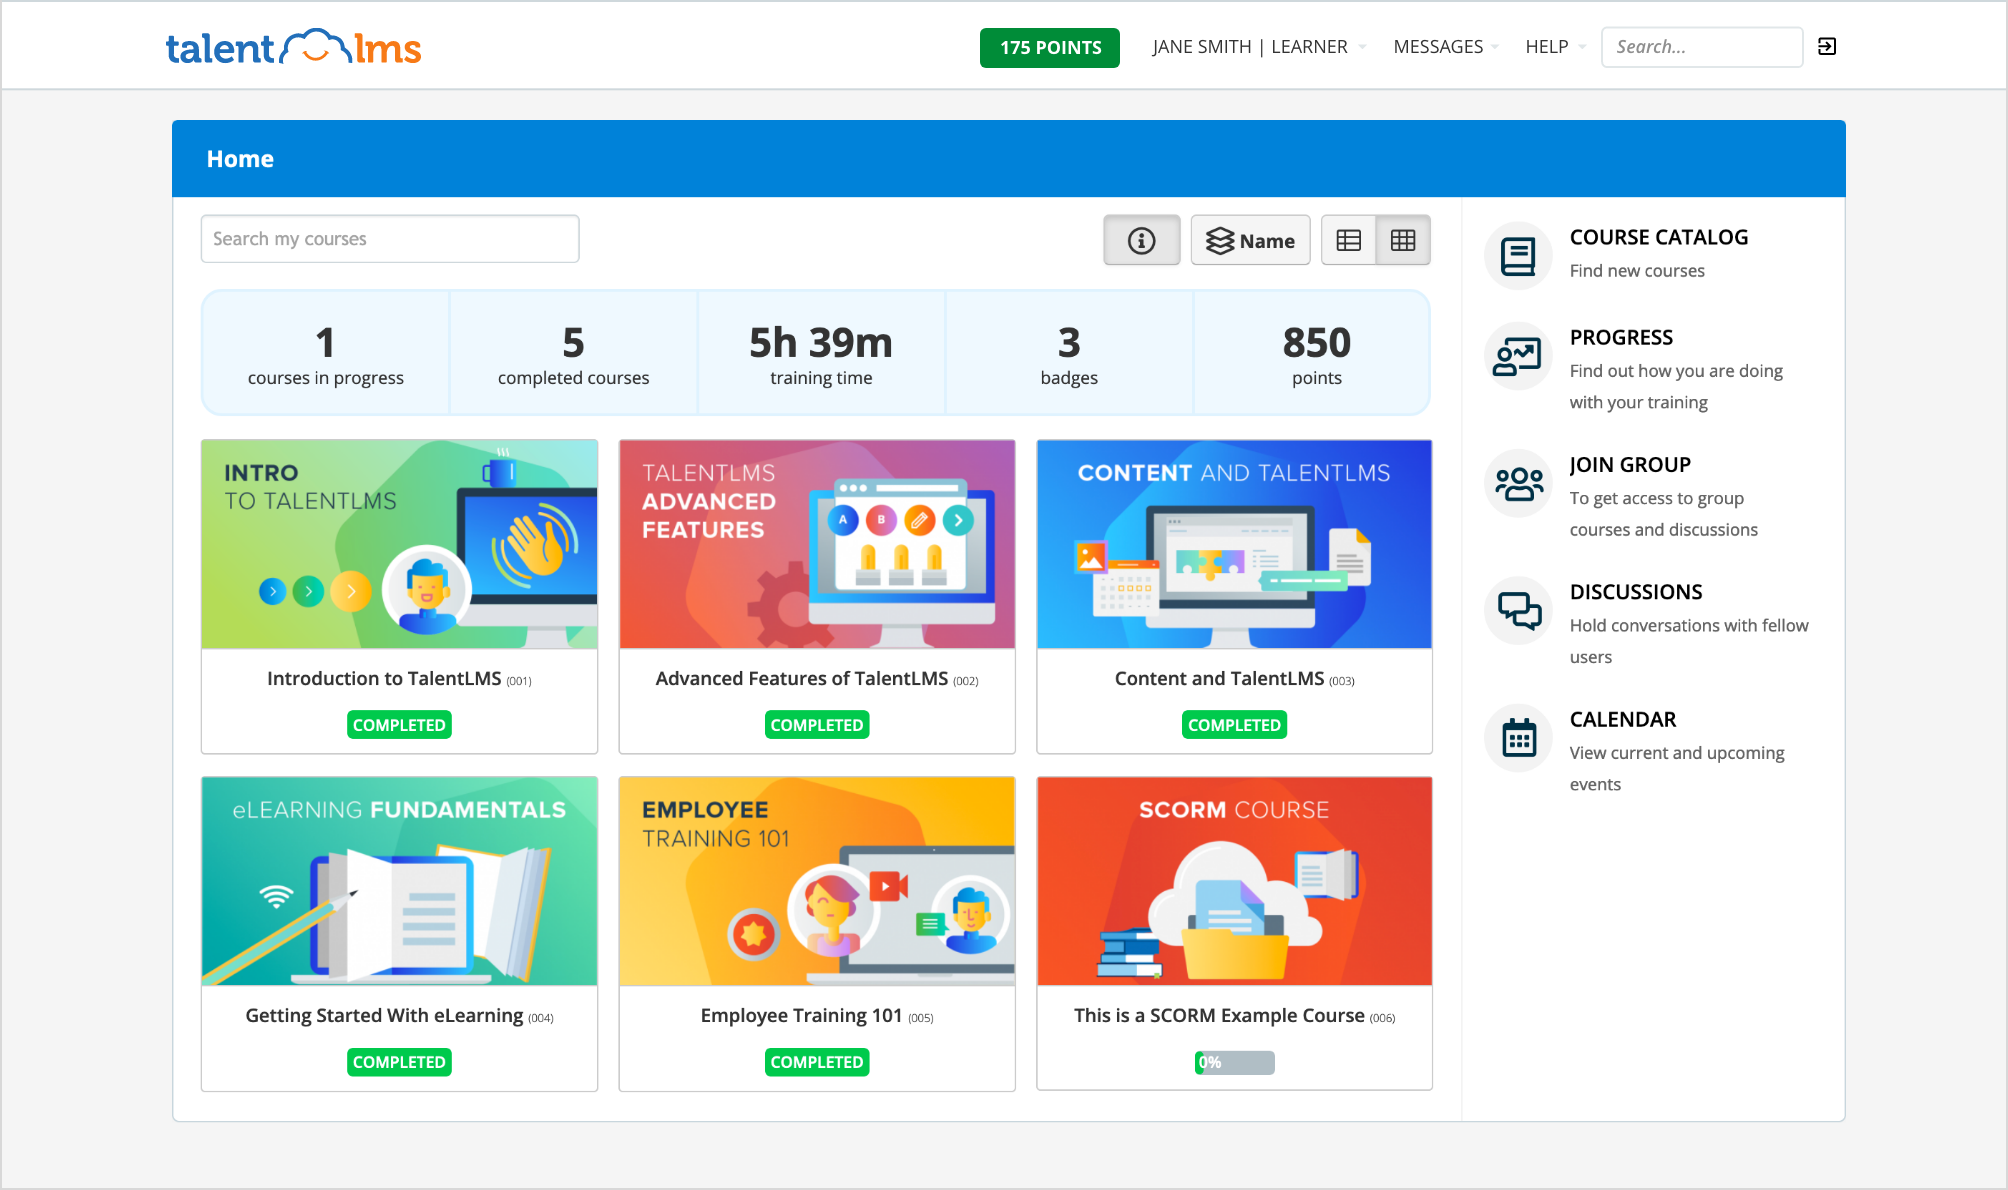 TalentLMS Learner home page featuring courses and course status